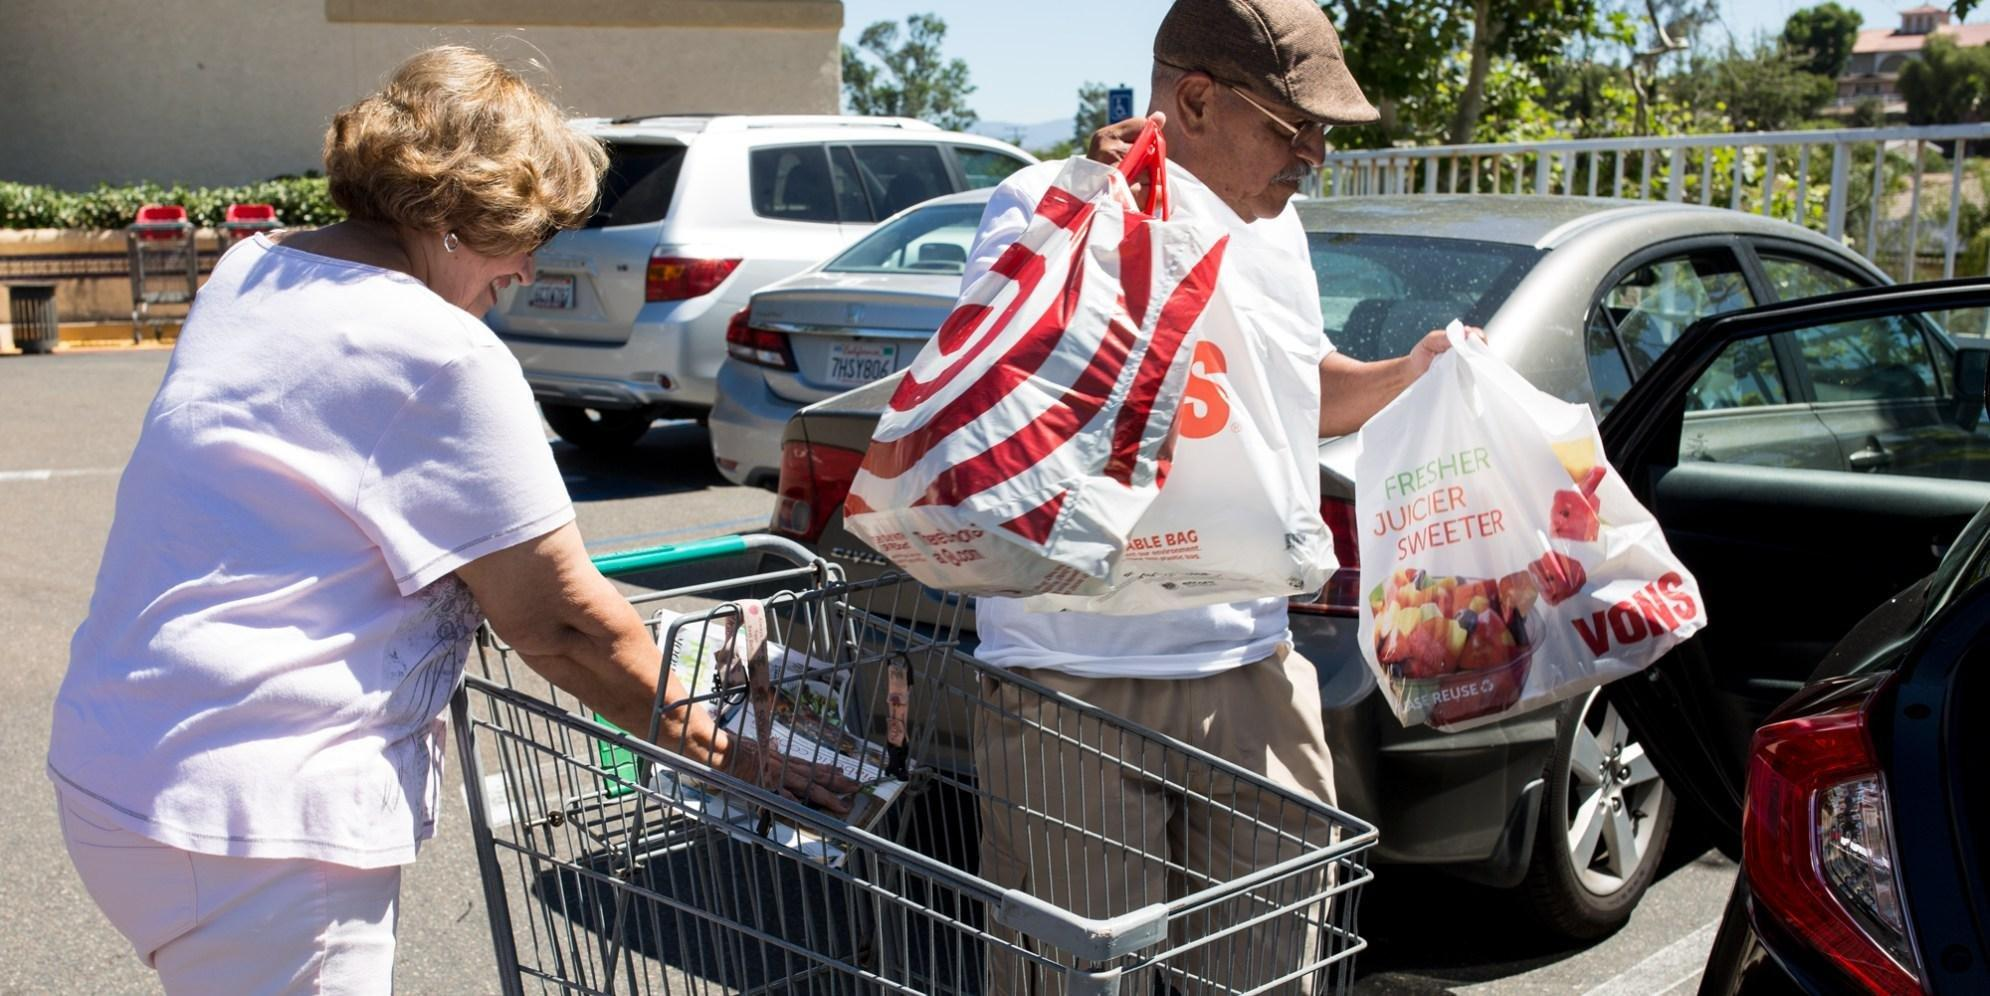 Medicare To Pay $450 To Help Seniors Lose Weight, Avoid Diabetes